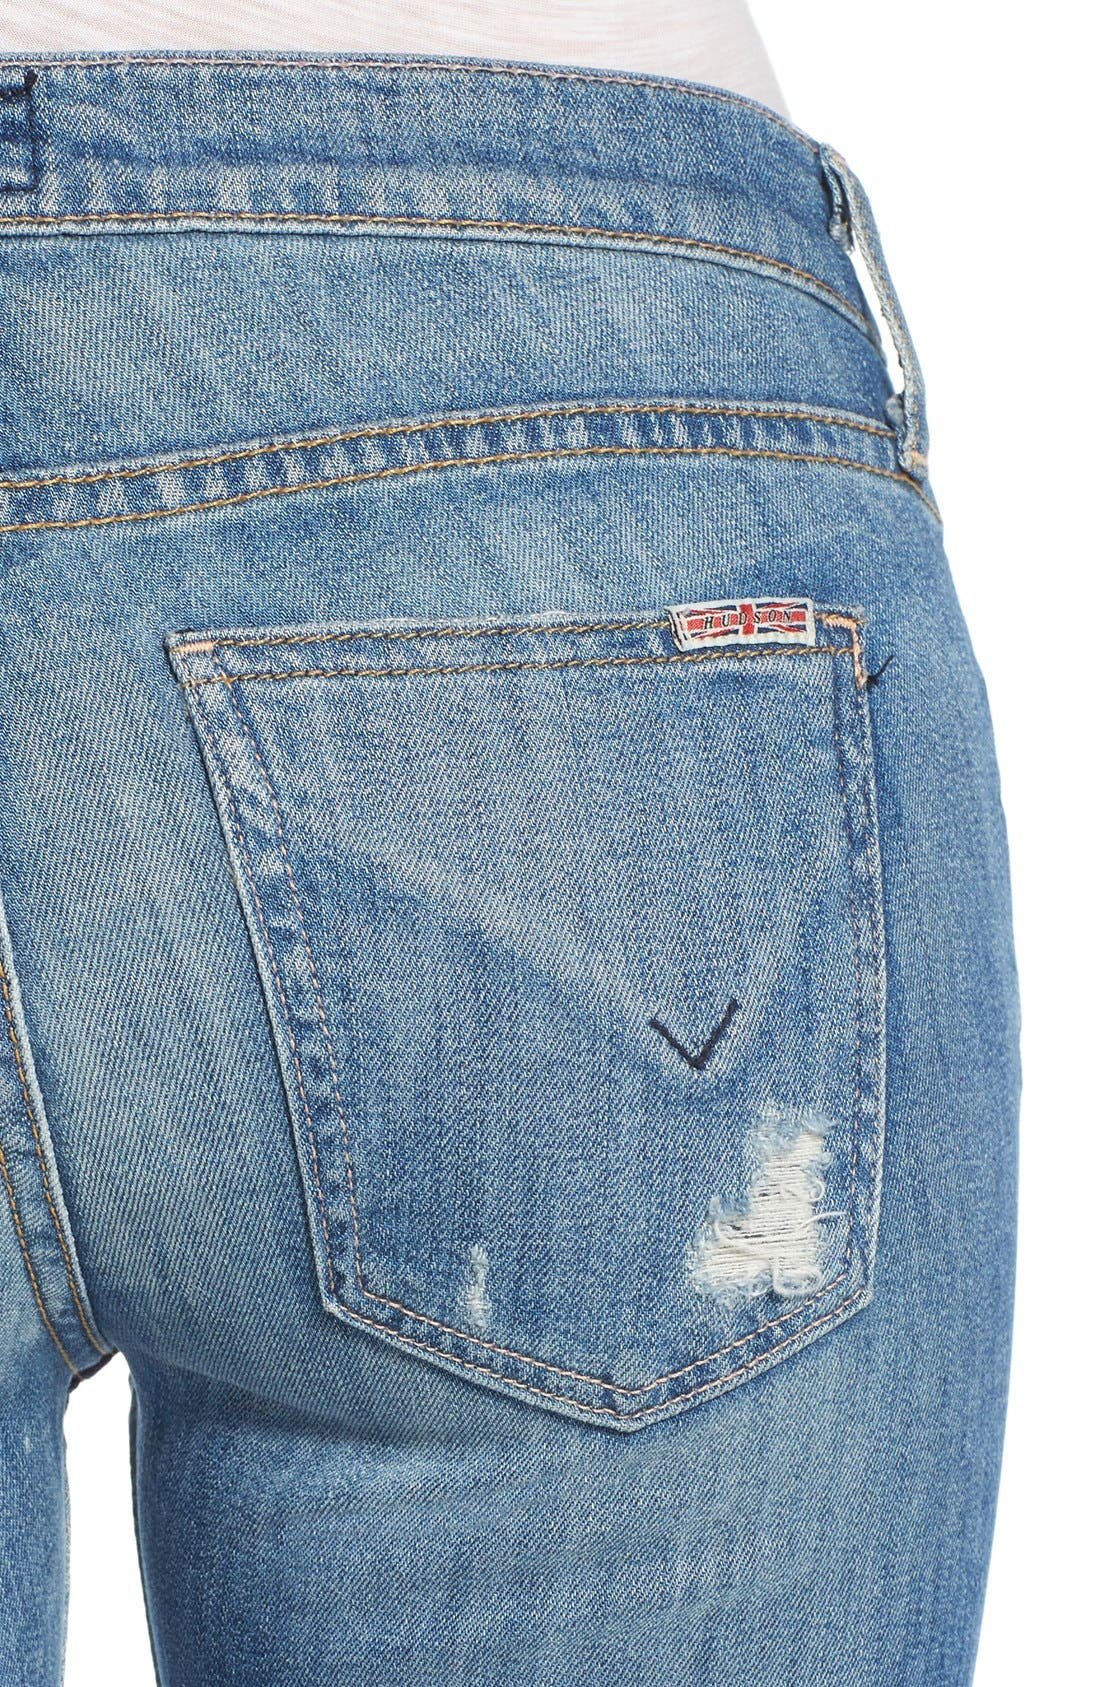 'Muse' Cuff Crop Jeans,                             Alternate thumbnail 3, color,                             INDIE